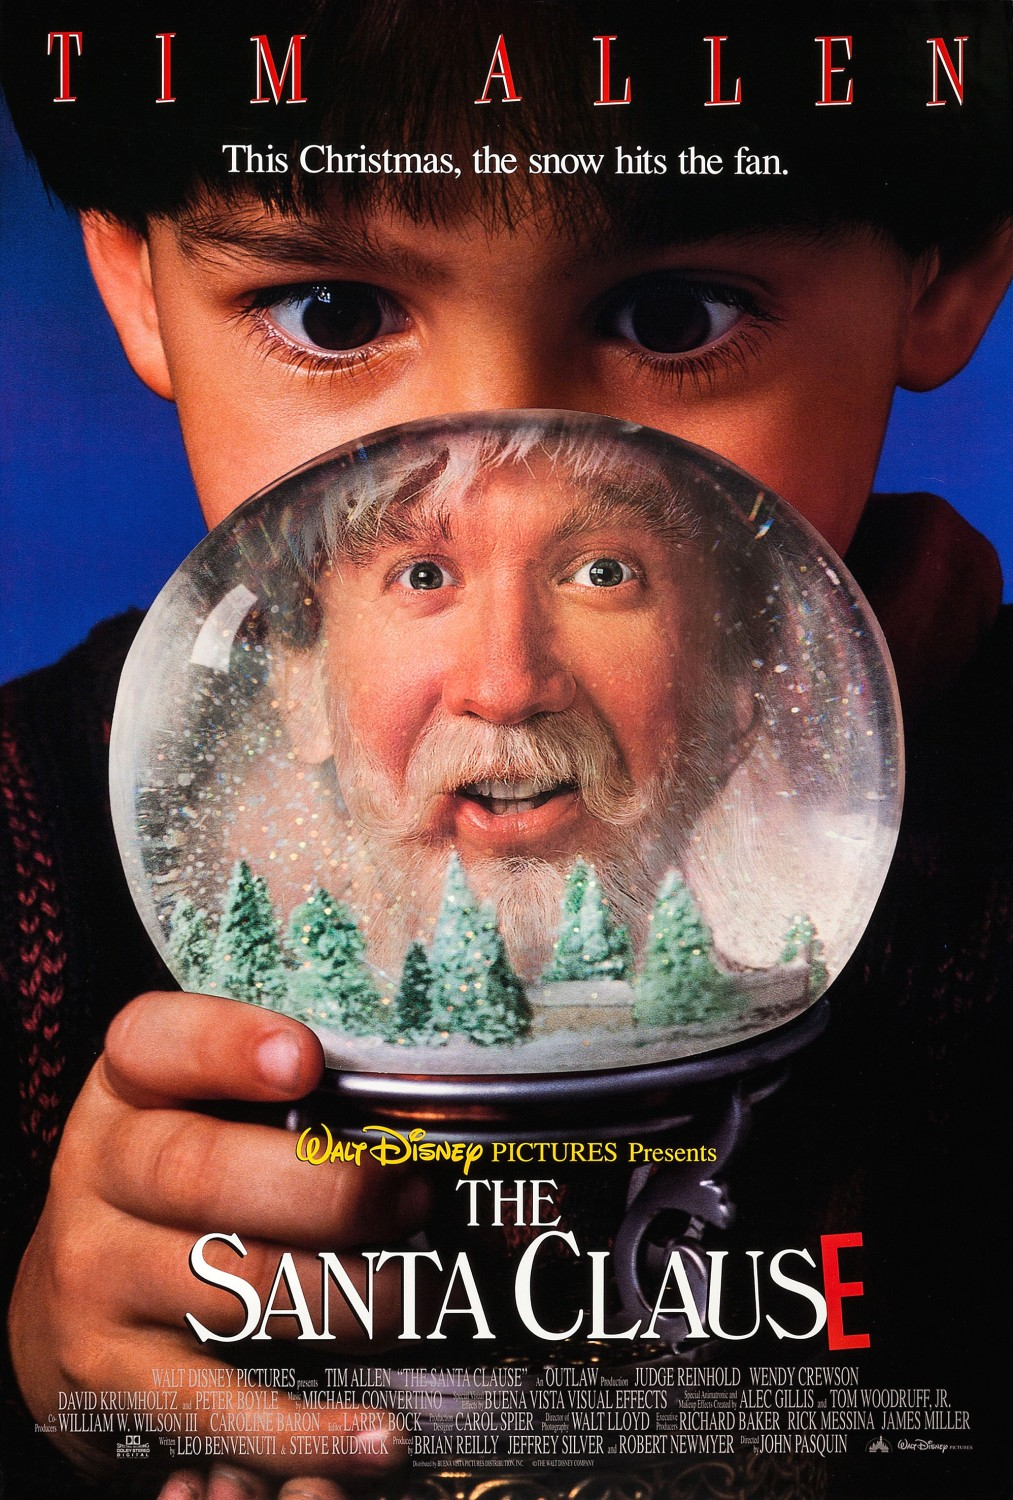 The Santa Clause returns to theaters